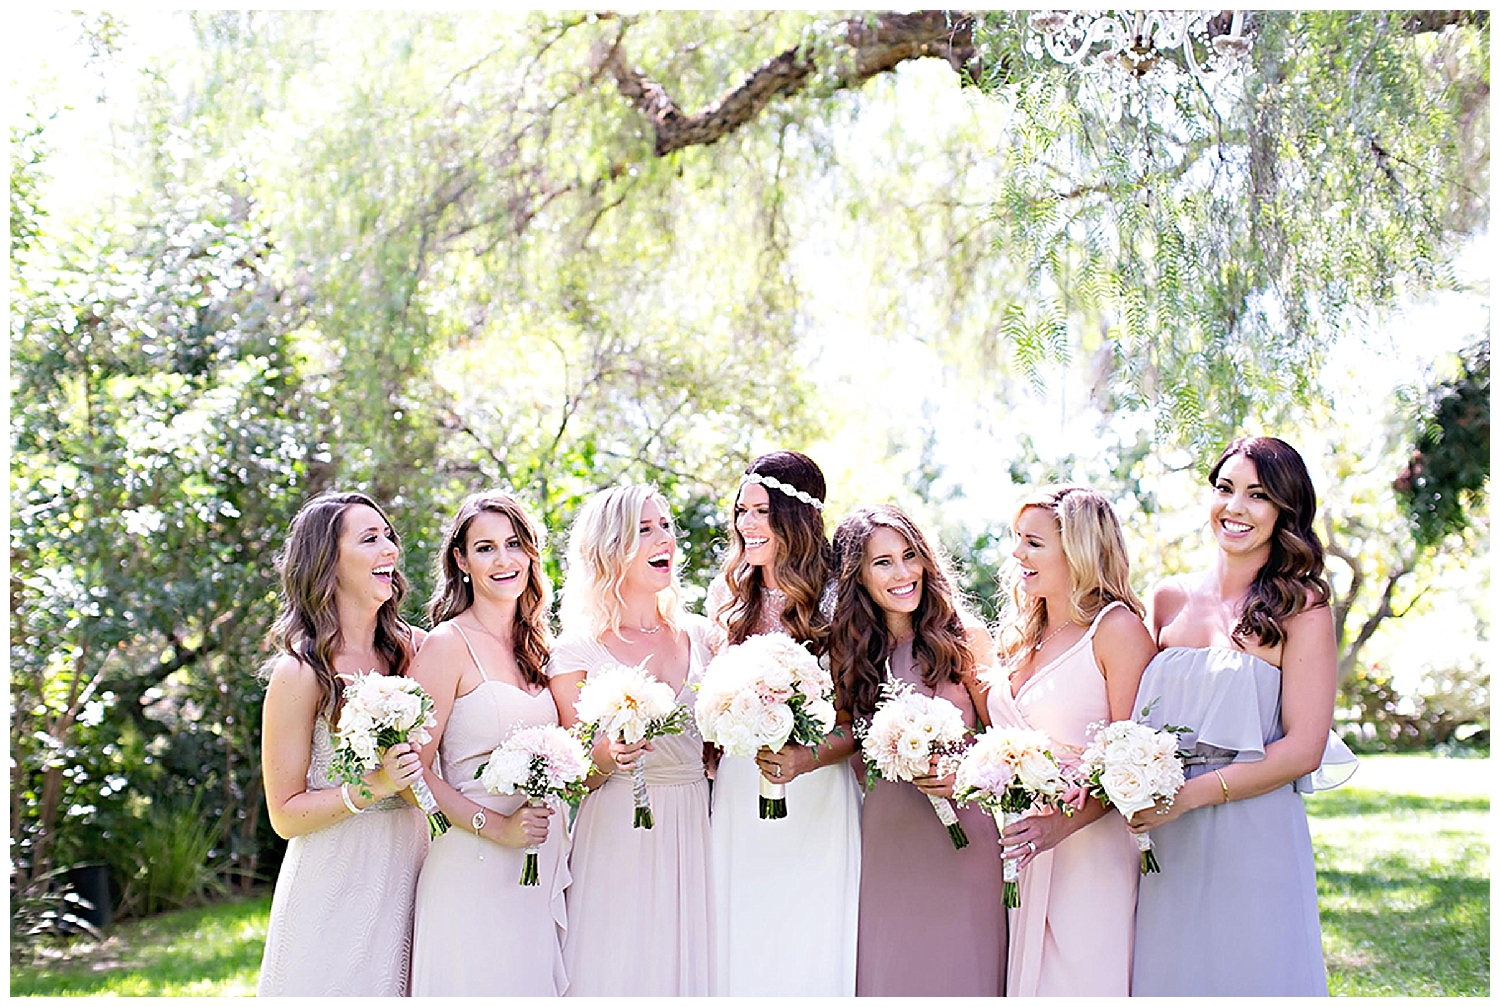 Guide to the Perfectly Mismatched Bridal Party •  Bella Bridesmaids Madison | Photo by Melissa Vossler Photography